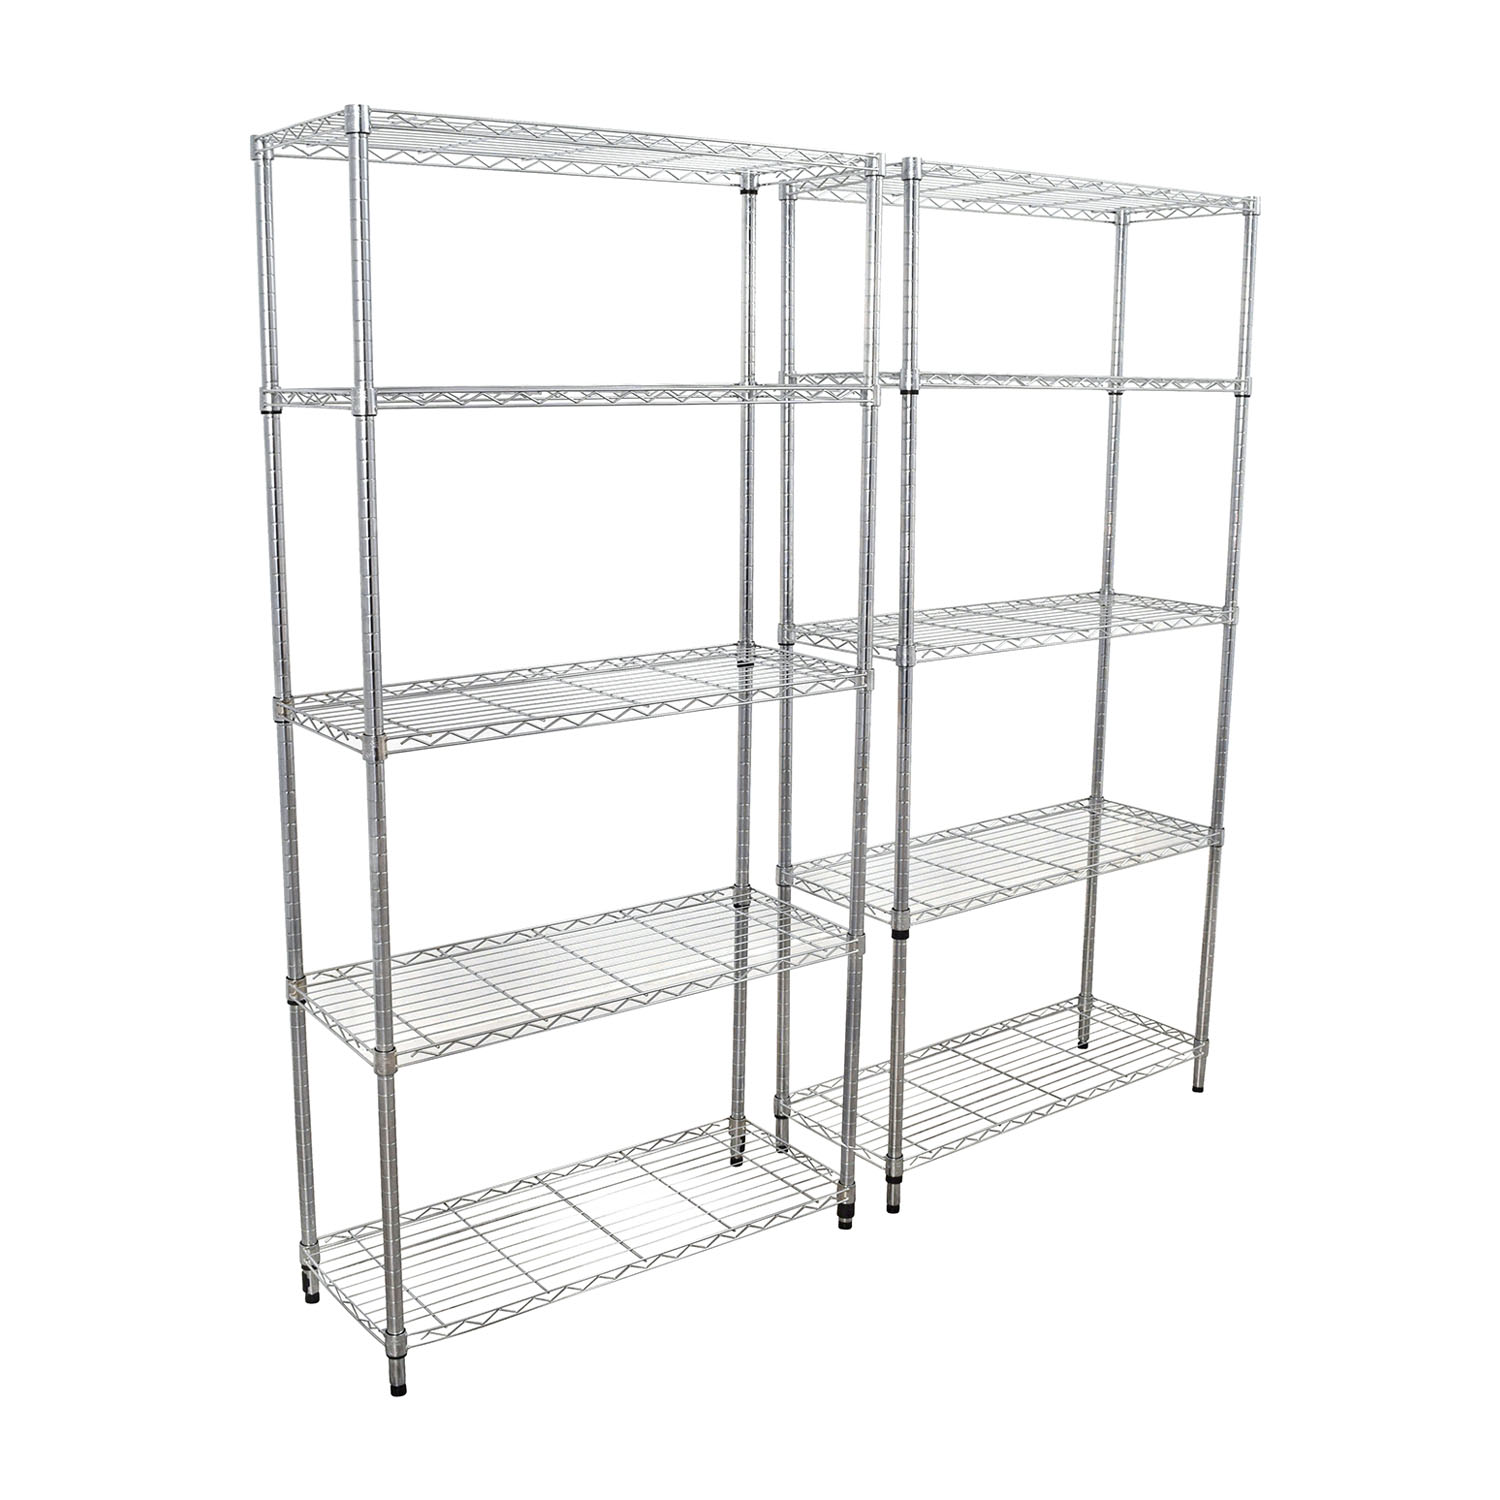 Home Depot Home Depot Chrome Five-Shelf Units price